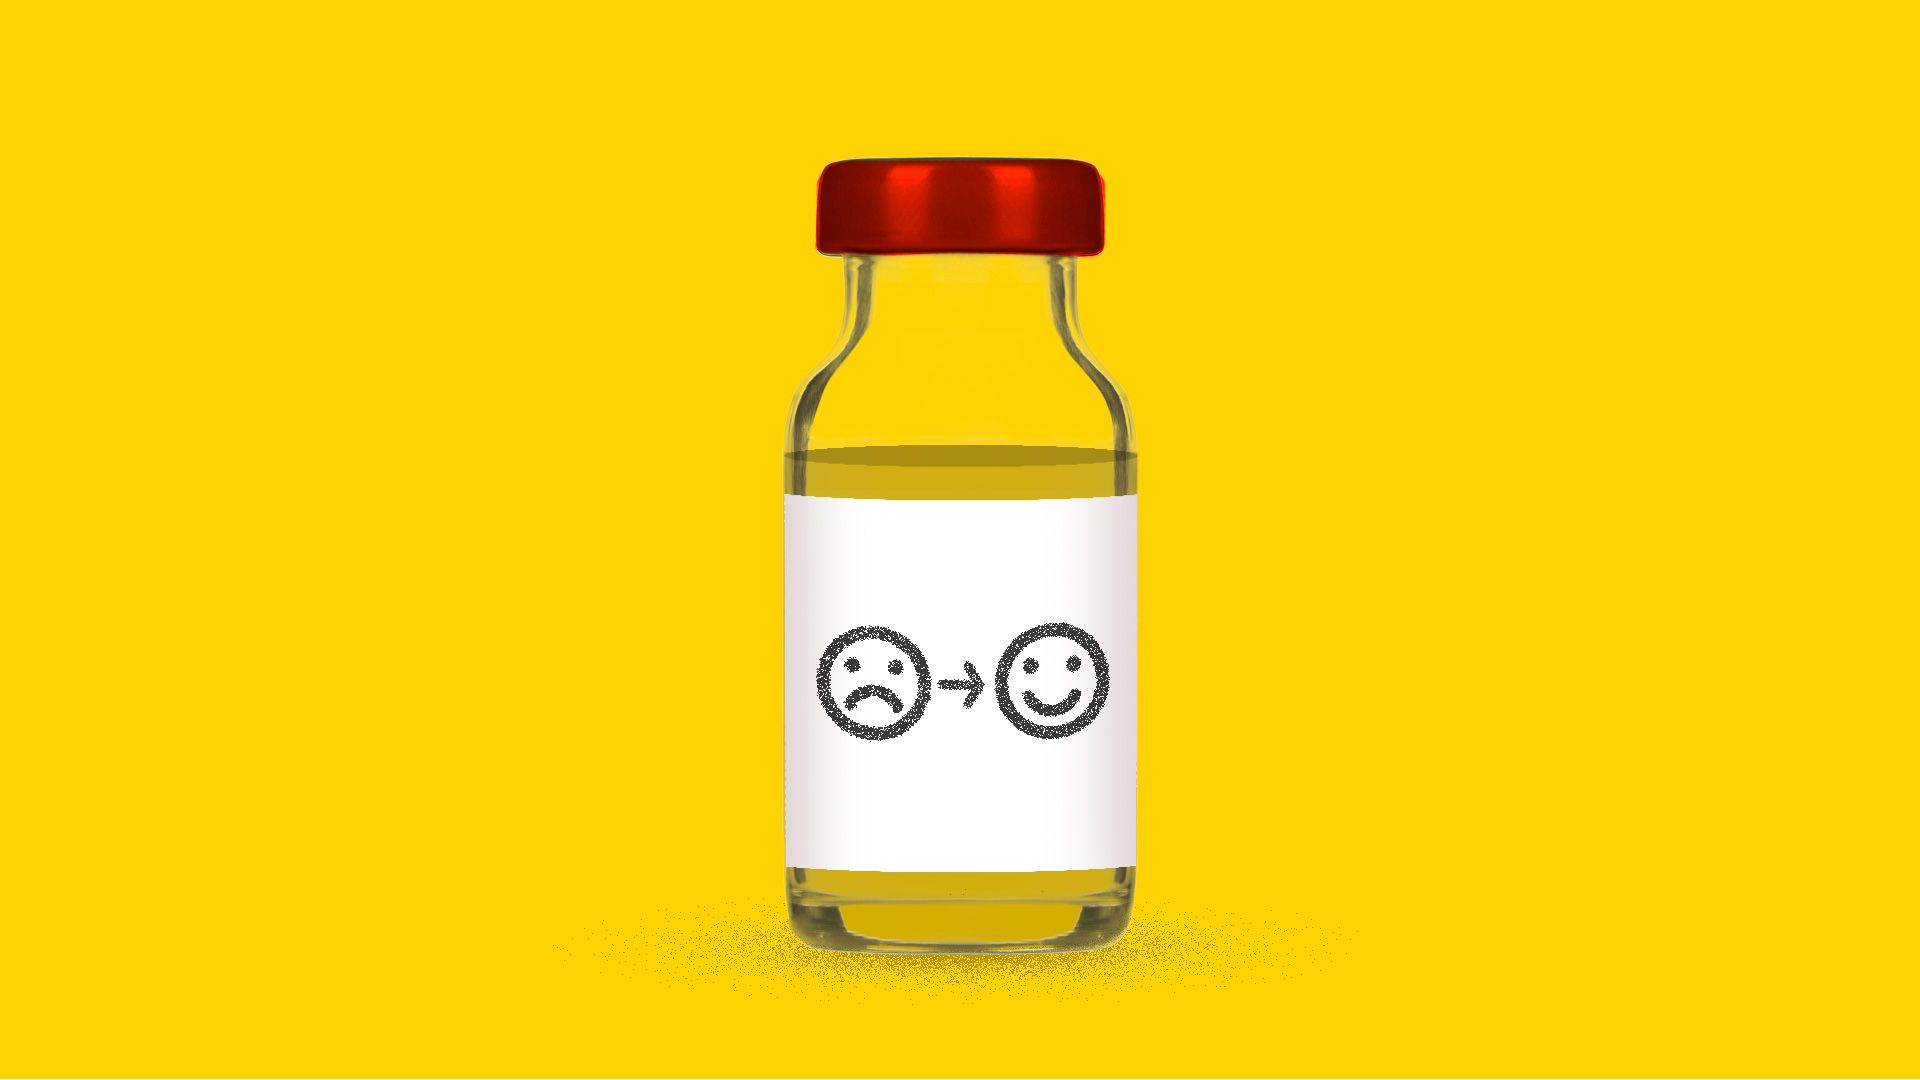 Illustration of bottle of antidepressant drug Ketamine with a sad face turning into a happy face